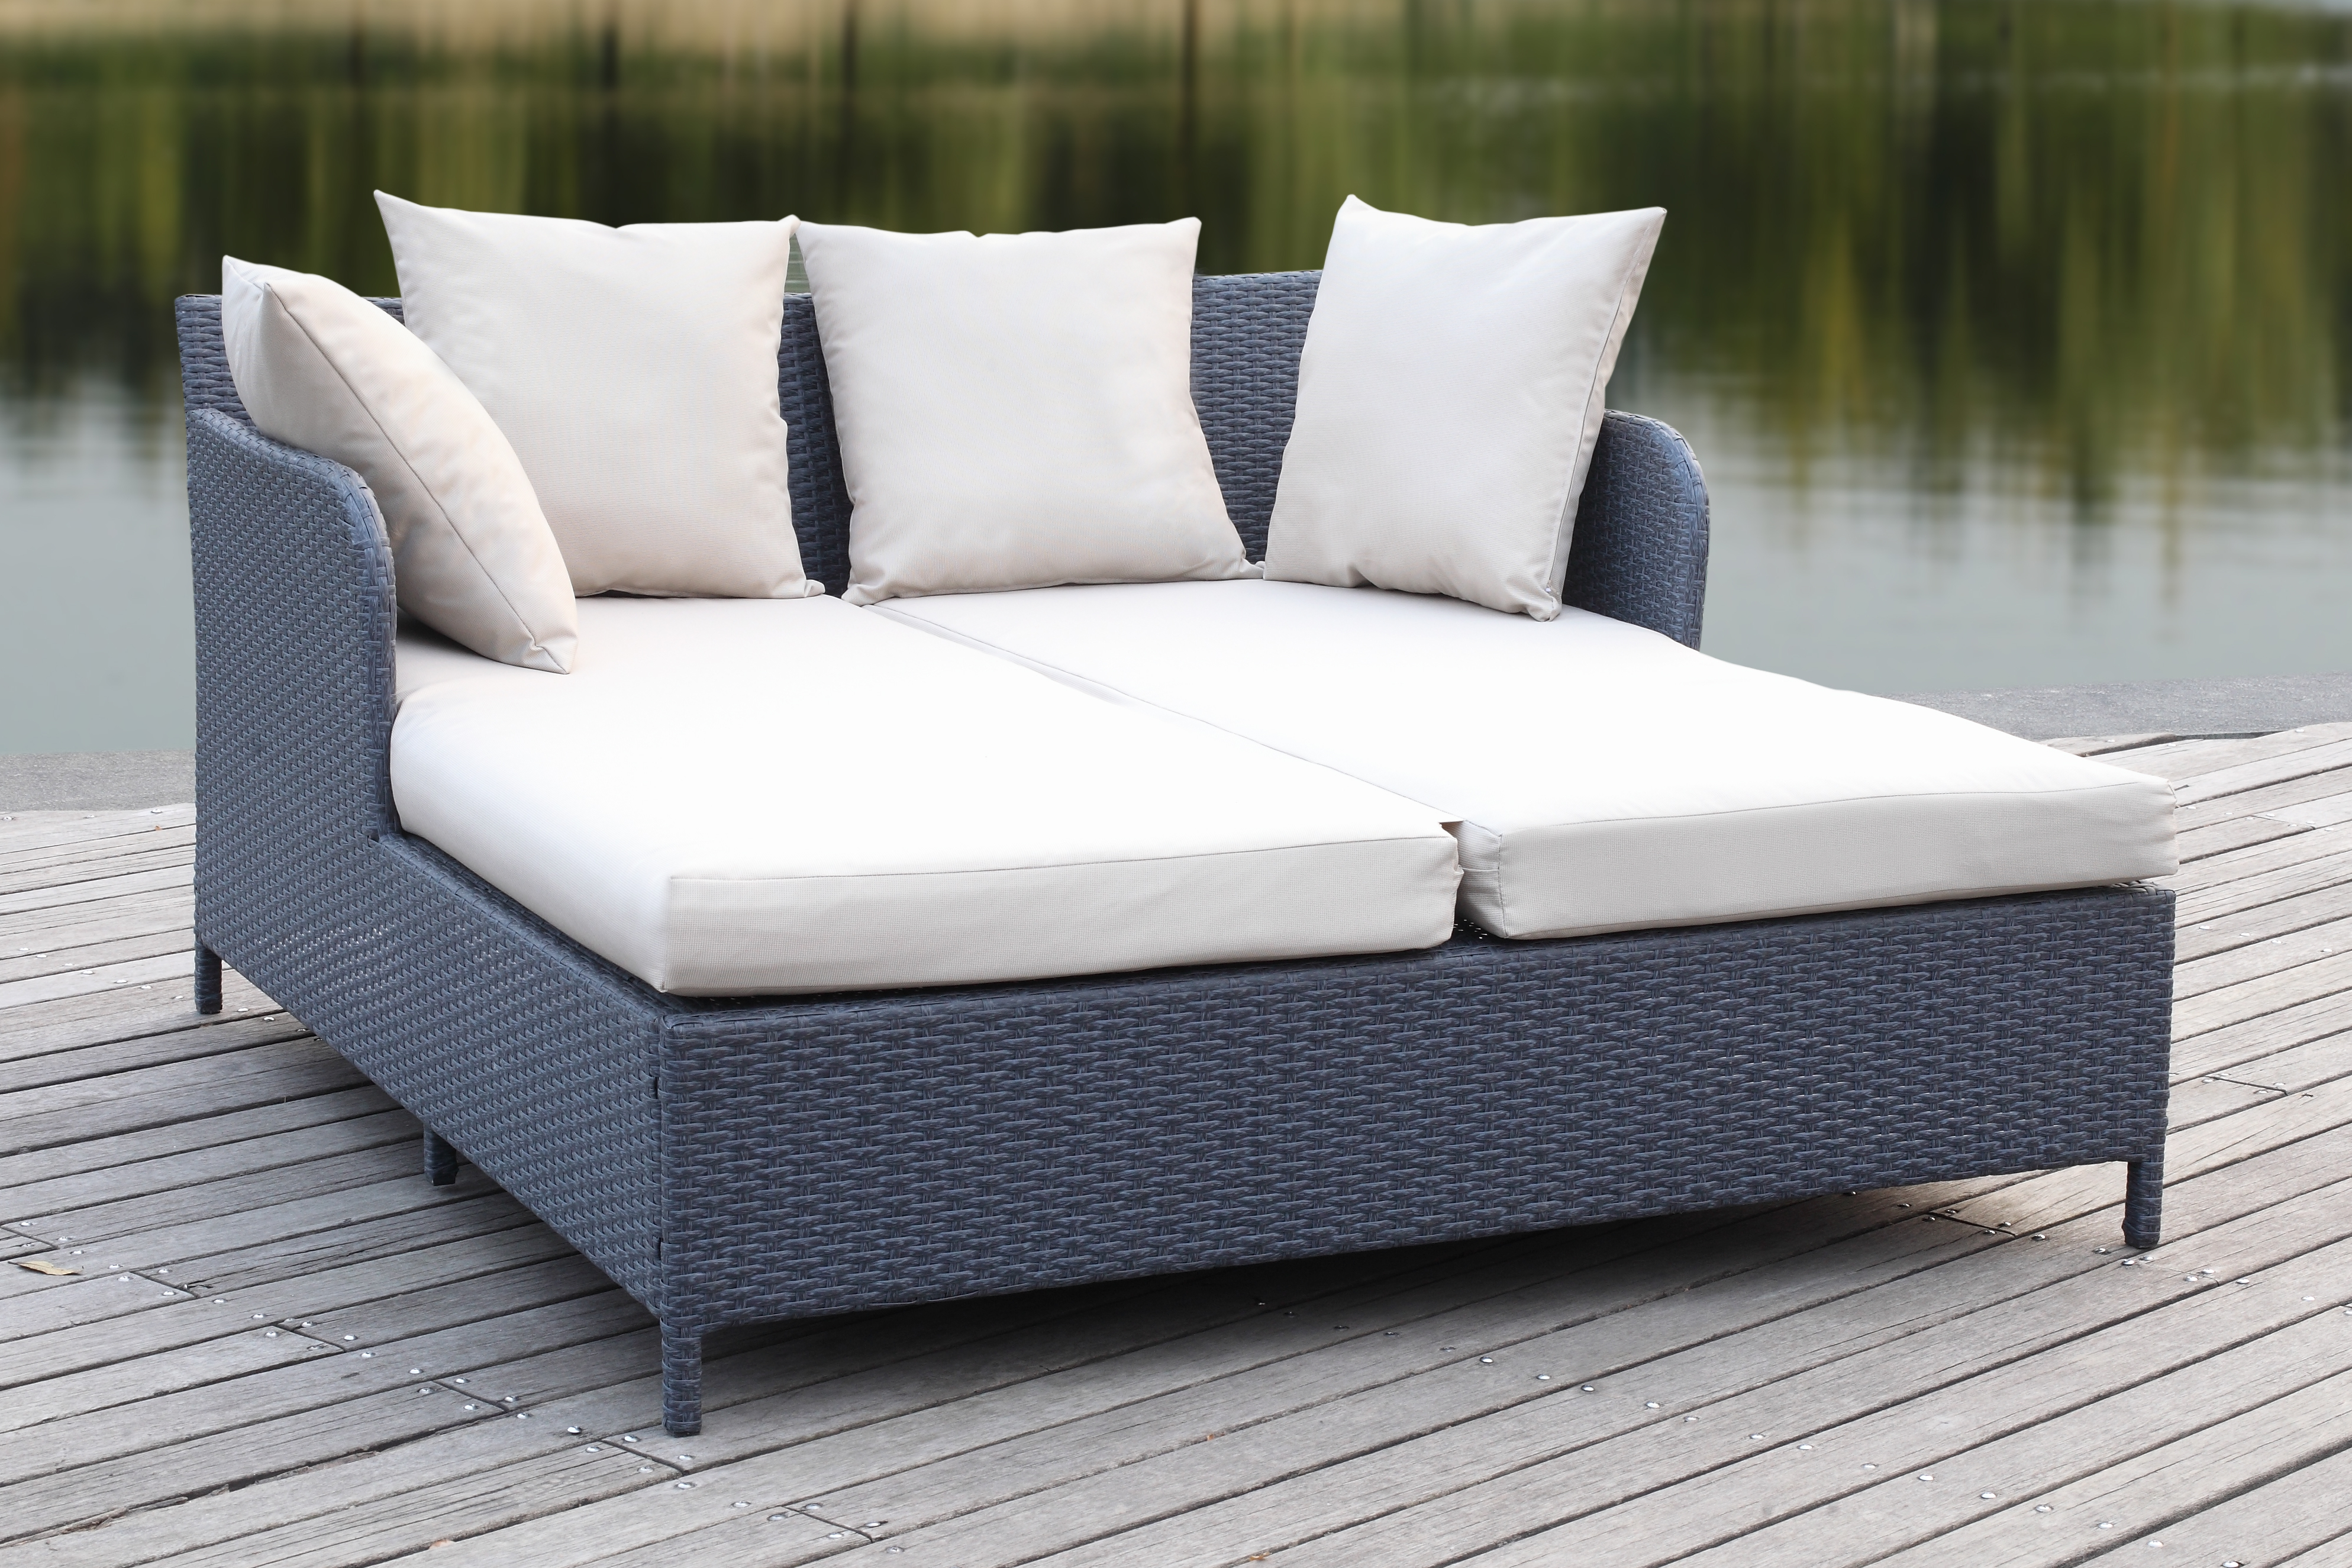 Safavieh August Outdoor Contemporary Daybed With Cushion Pertaining To Popular Resort Patio Daybeds (View 18 of 20)